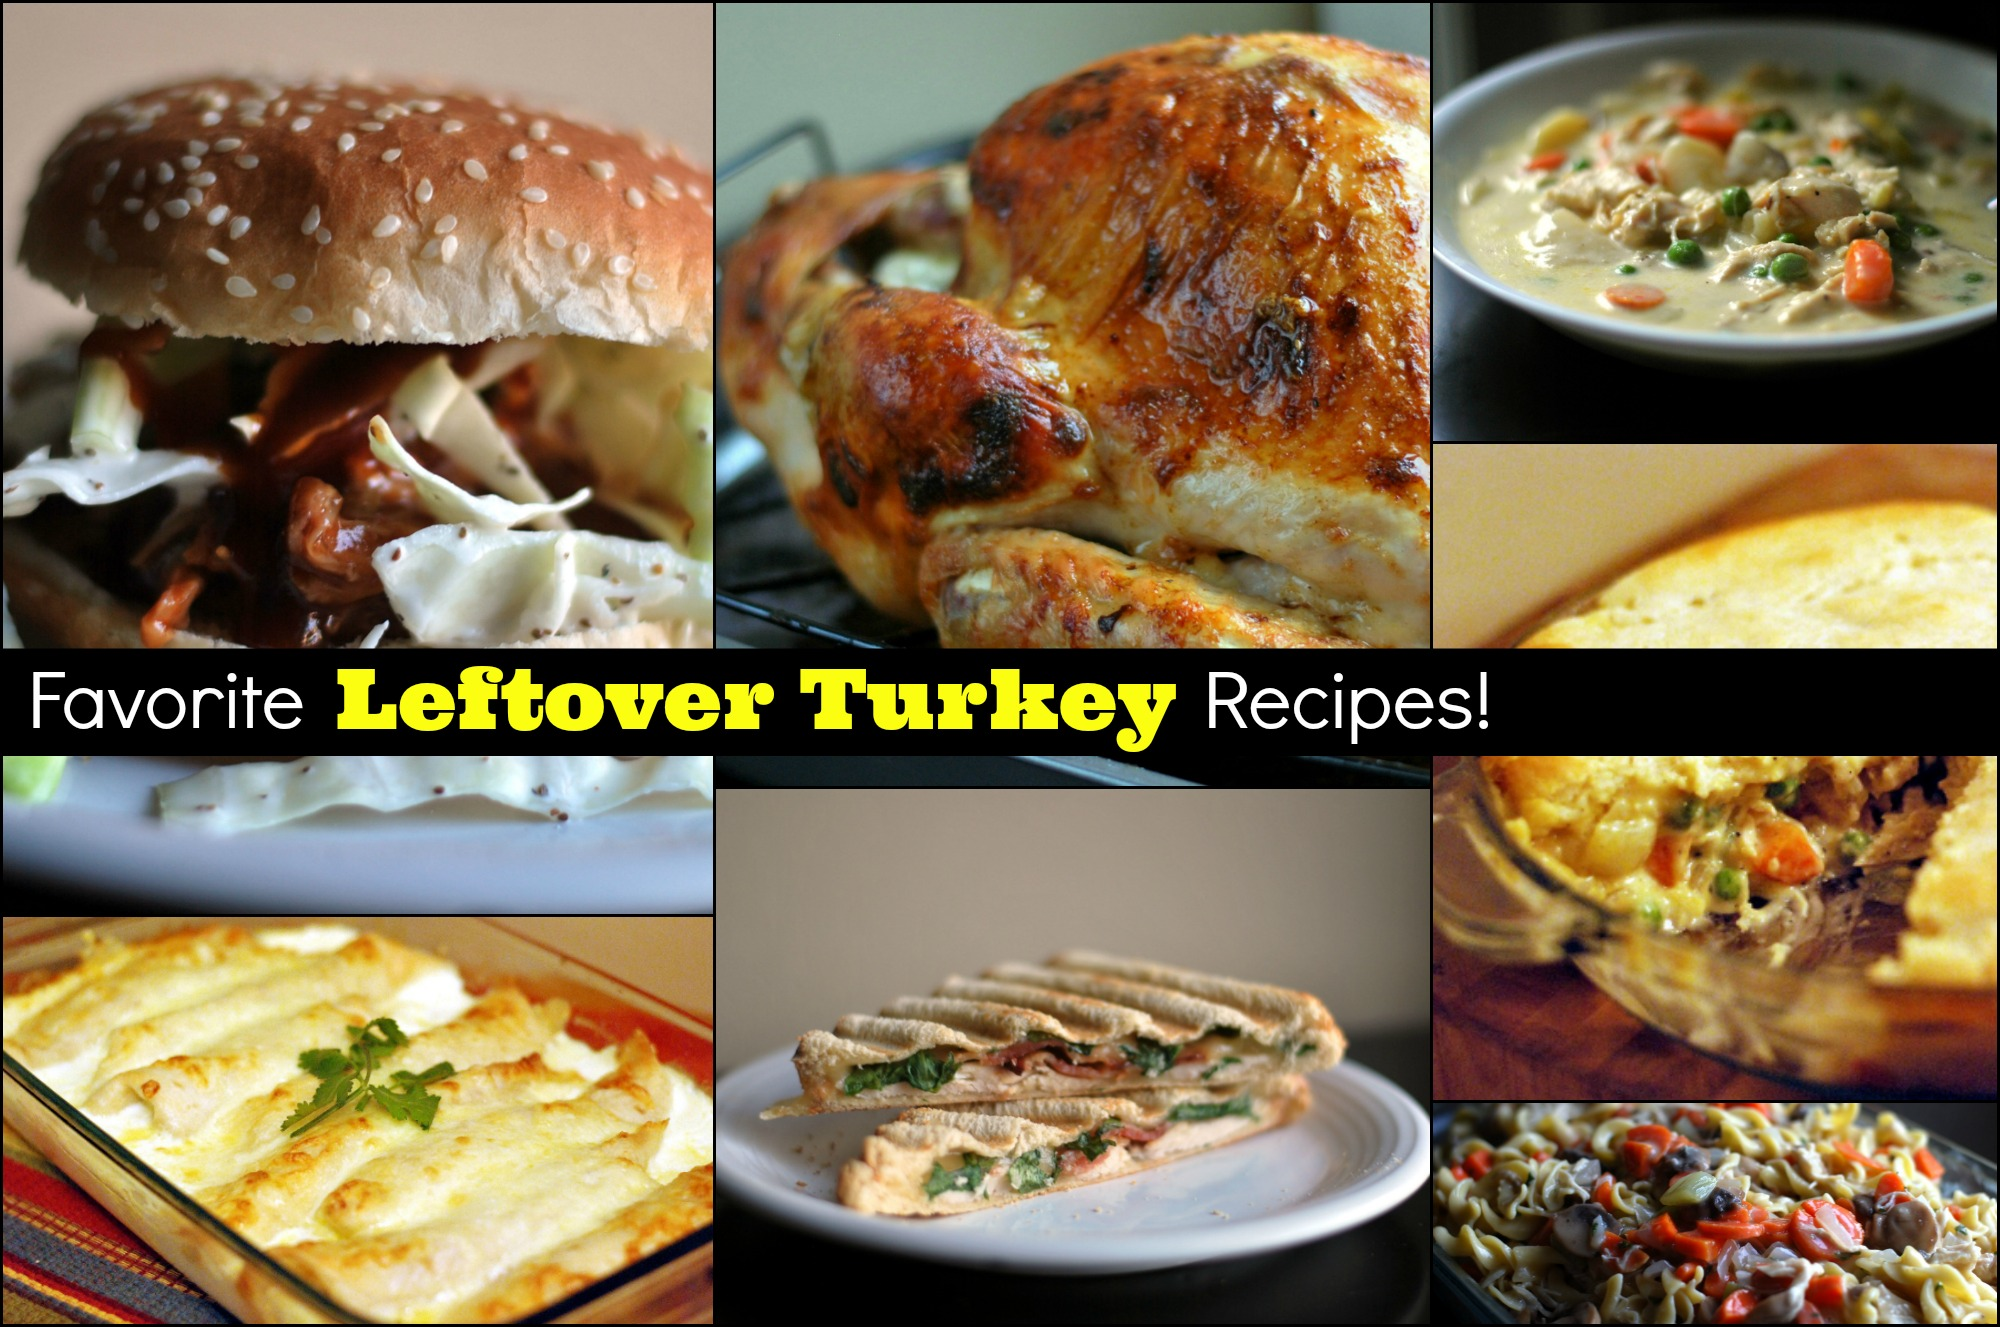 Leftover turkey recipes aunt bee 39 s recipes for Leftover shredded turkey sandwiches